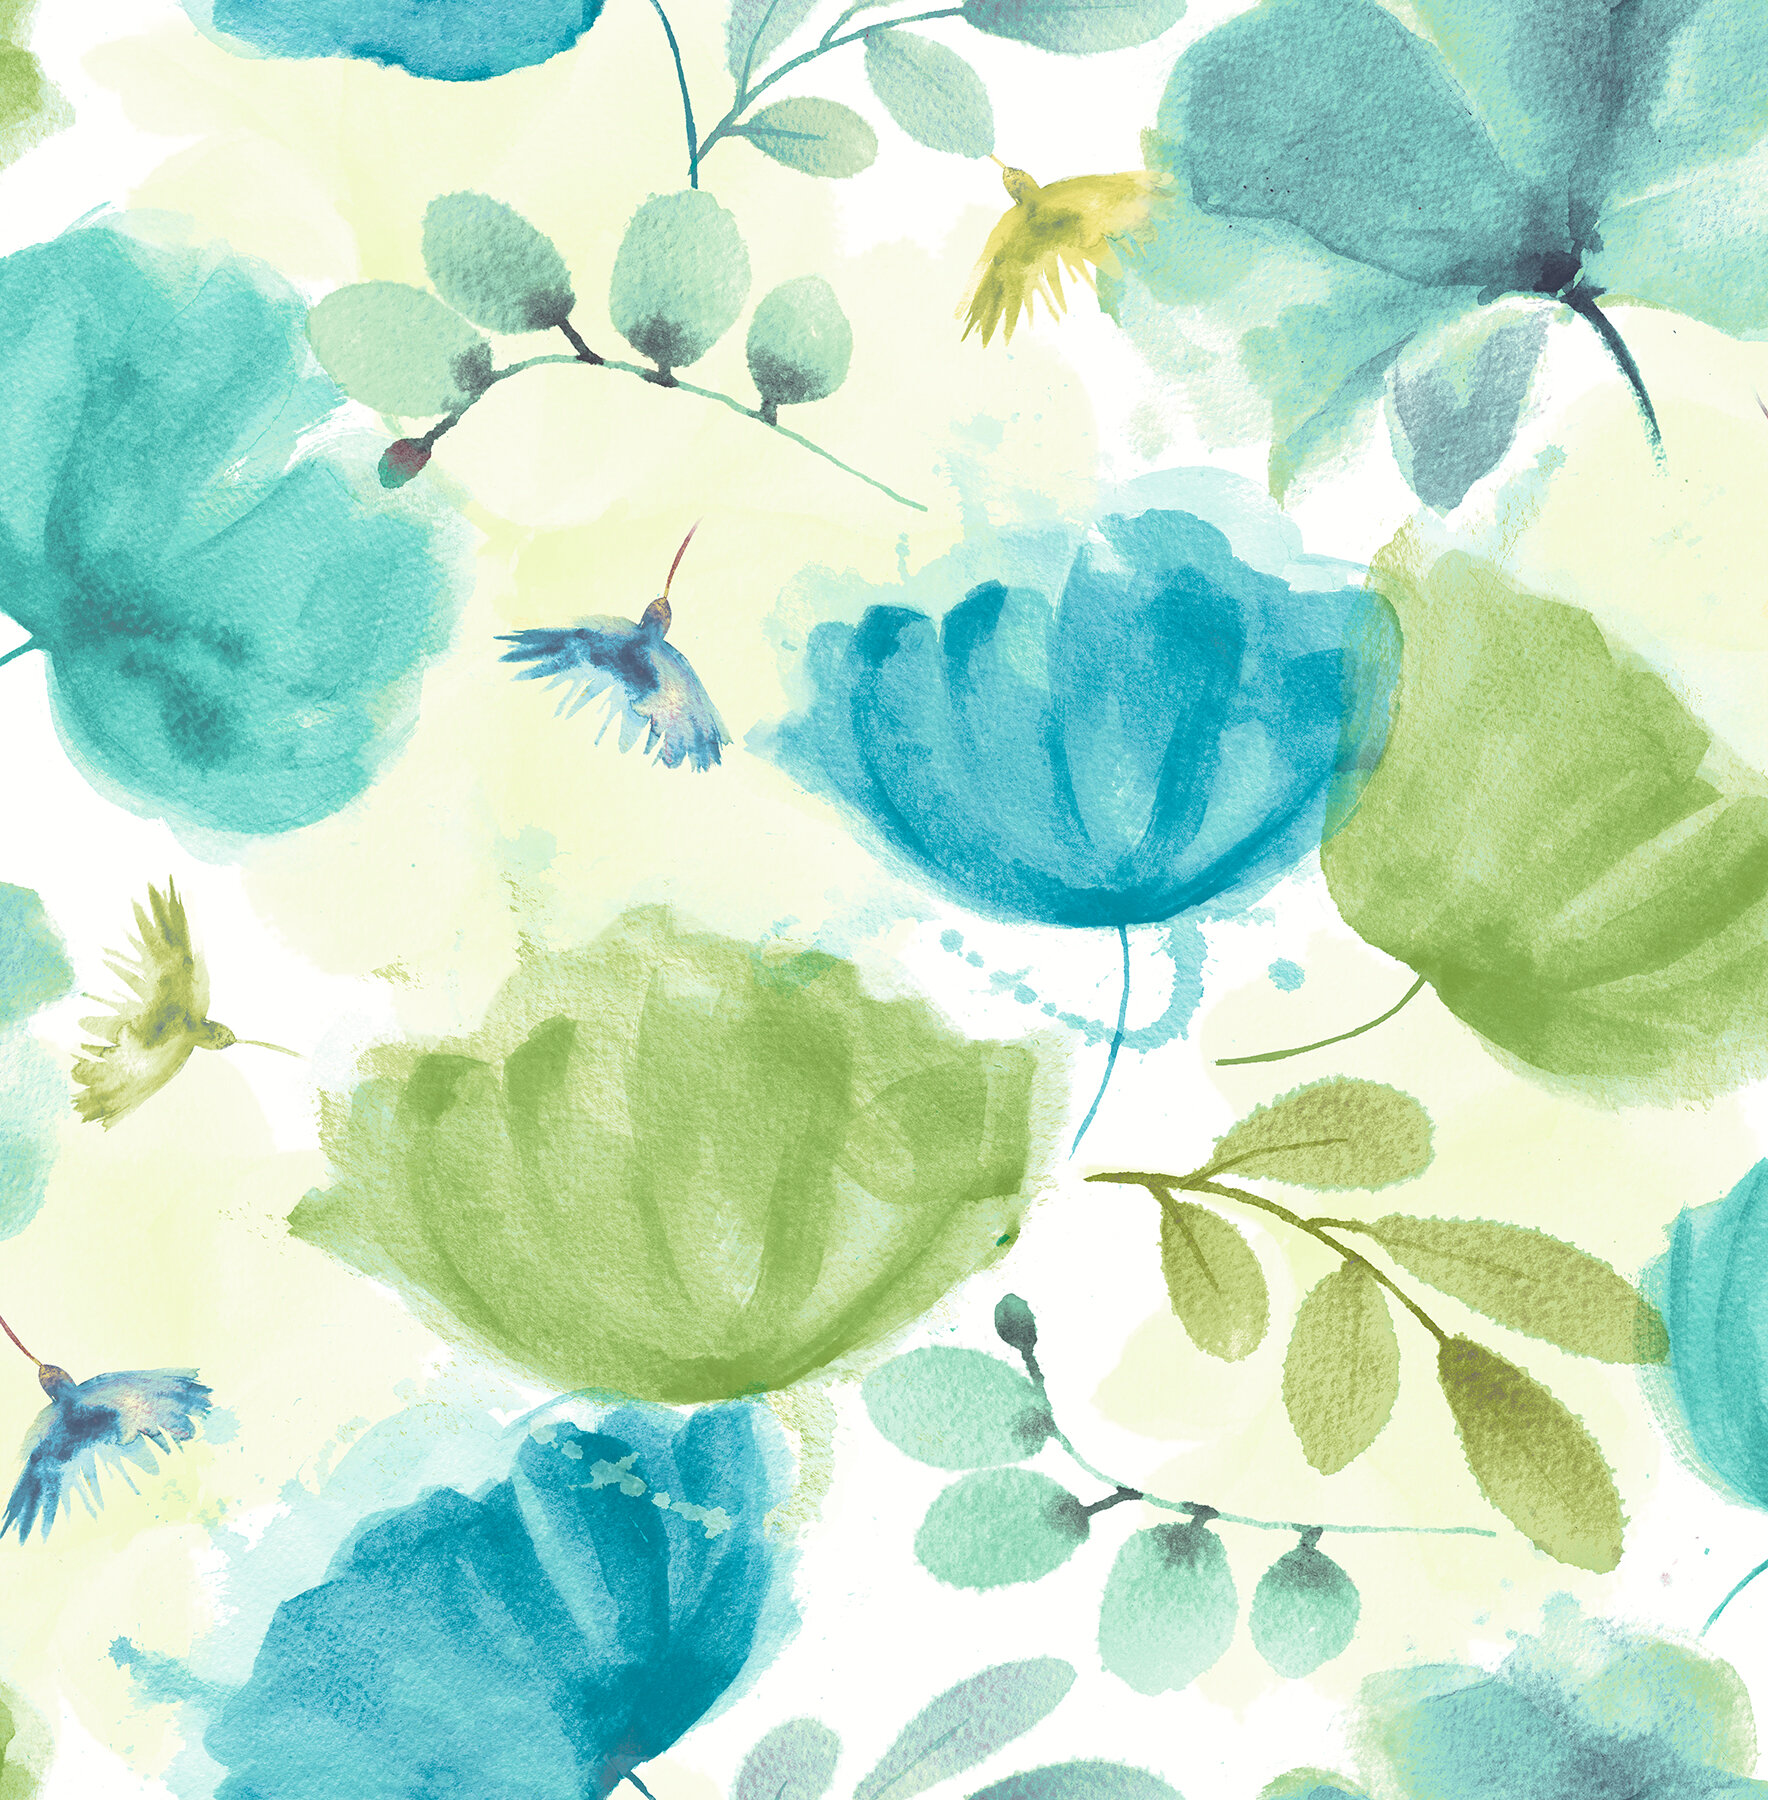 Ebern Designs Zahra Turquoise Floral Wallpaper Wayfair